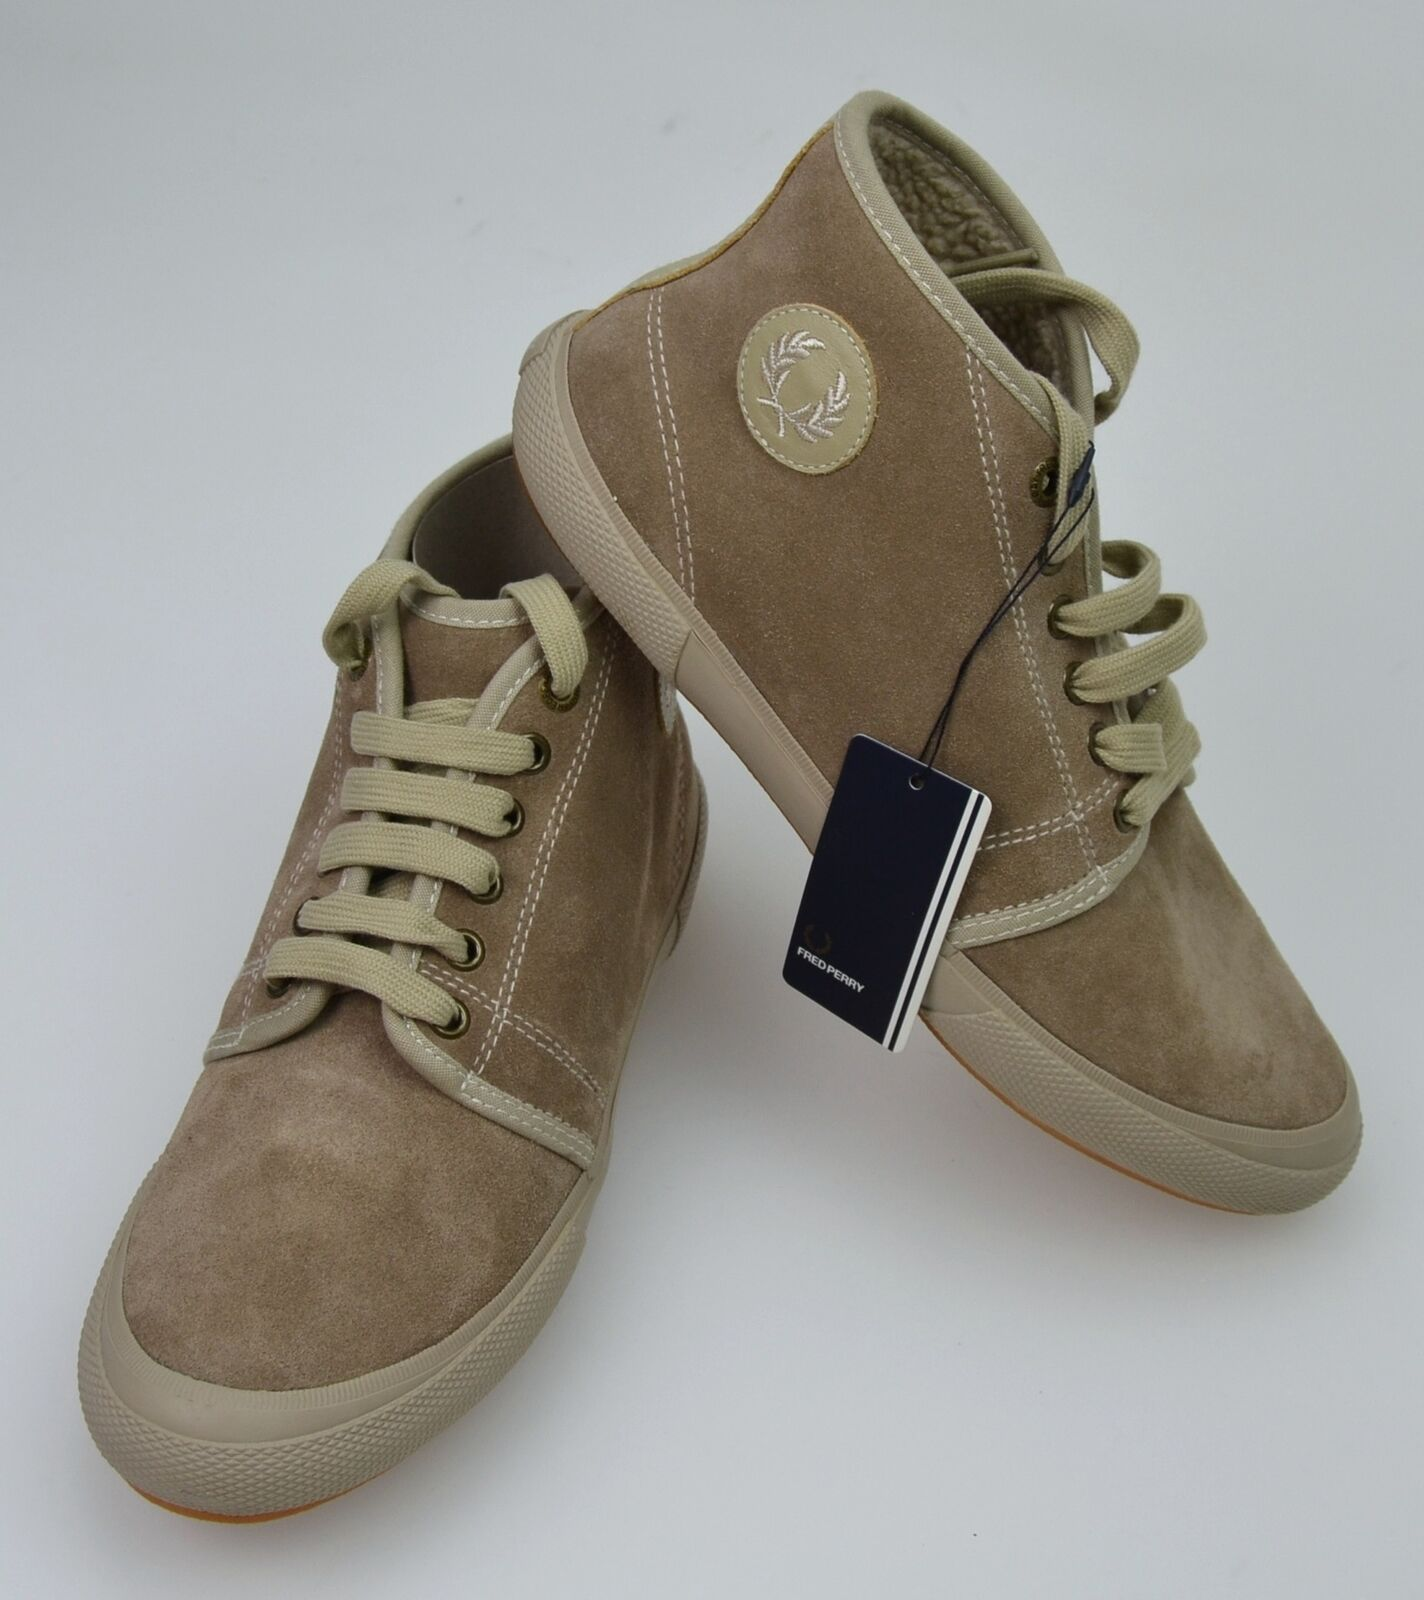 FRED PERRY MAN SNEAKER SHOES CASUAL FREE TIME SUEDE WOOL CODE B1051 DEFECT